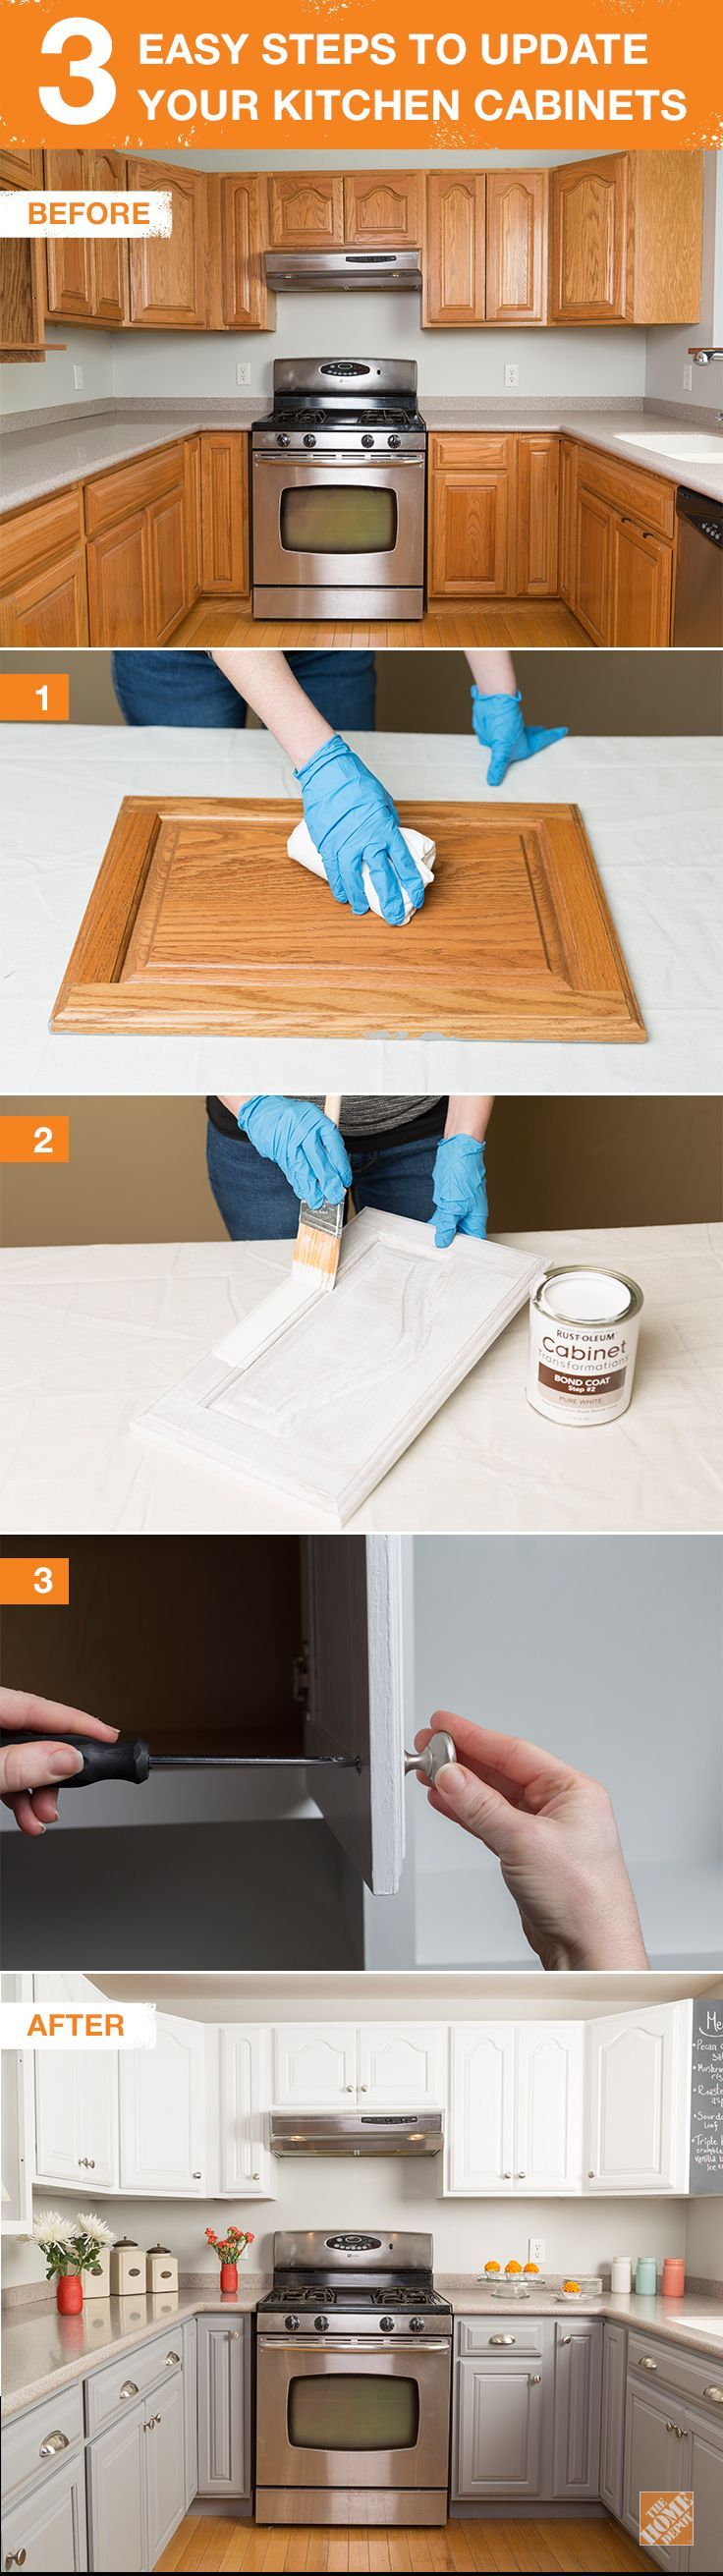 Update your kitchen cabinets in 3 easy steps. With Rust-Oleum paint, you can give your kitchen a new, refreshed look. Save time and money with this DIY tutorial on The Home Depot Blog.: